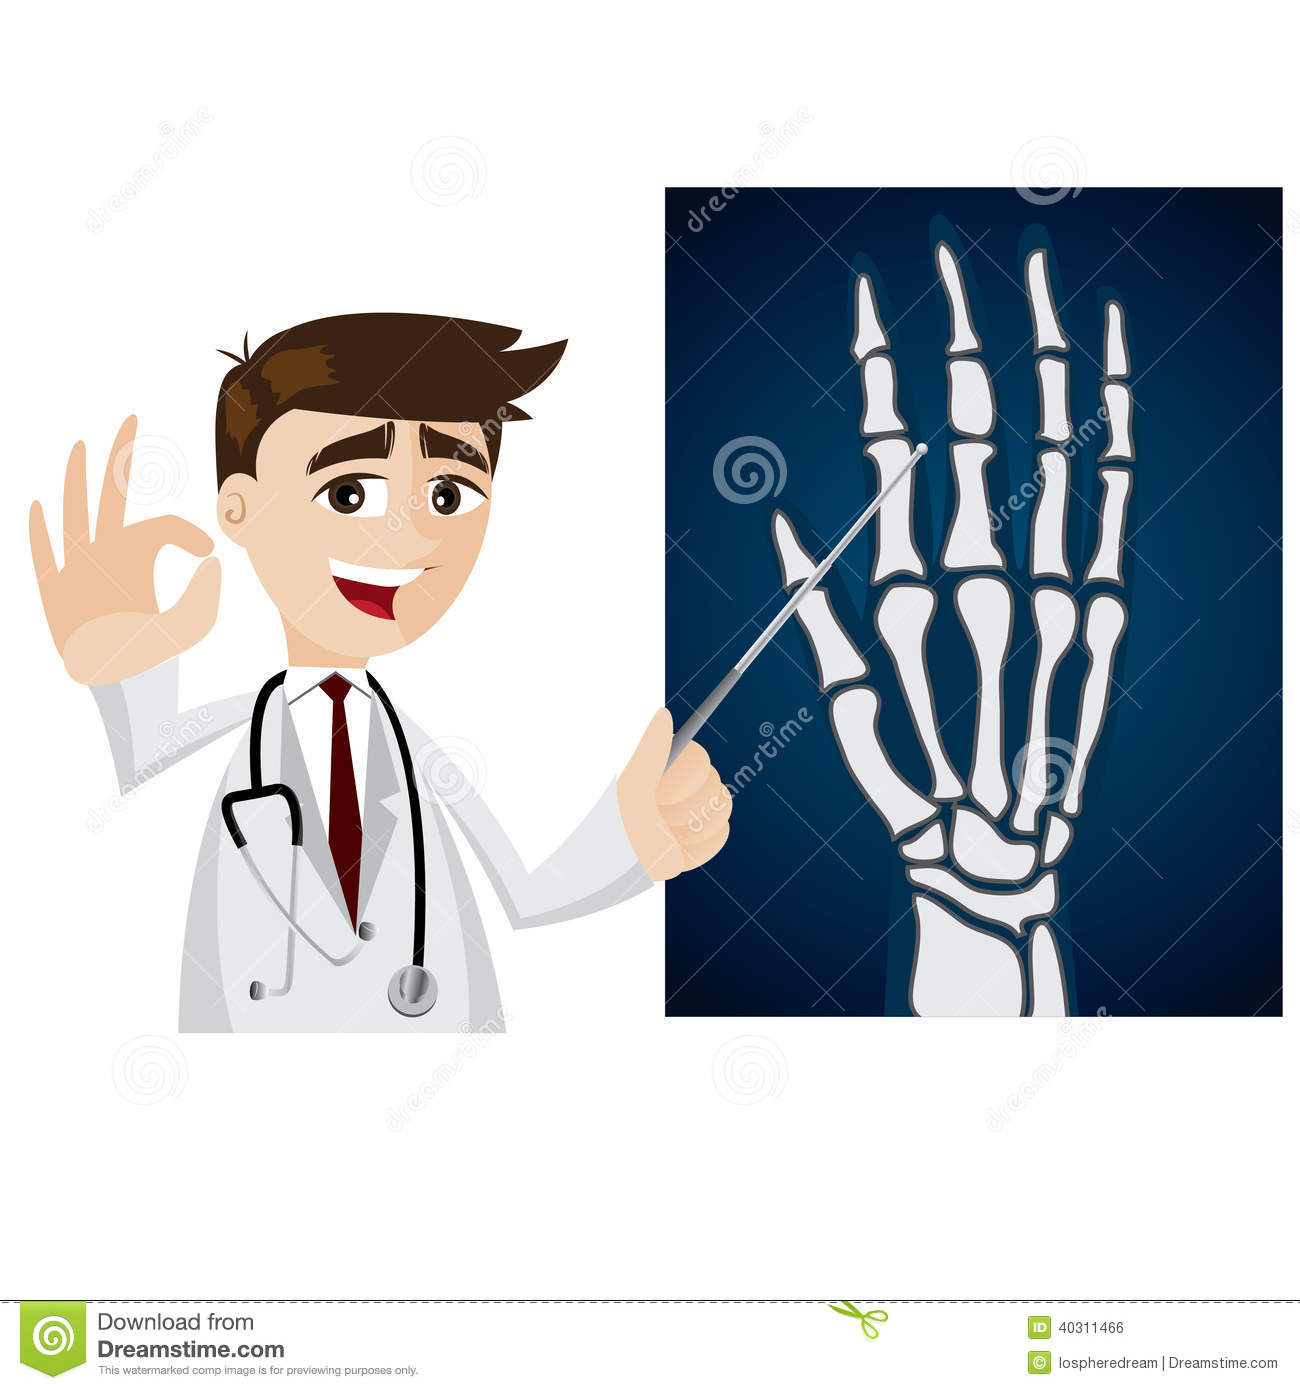 Cartoon Doctor With X-ray Film Stock Vector - Image: 40311466